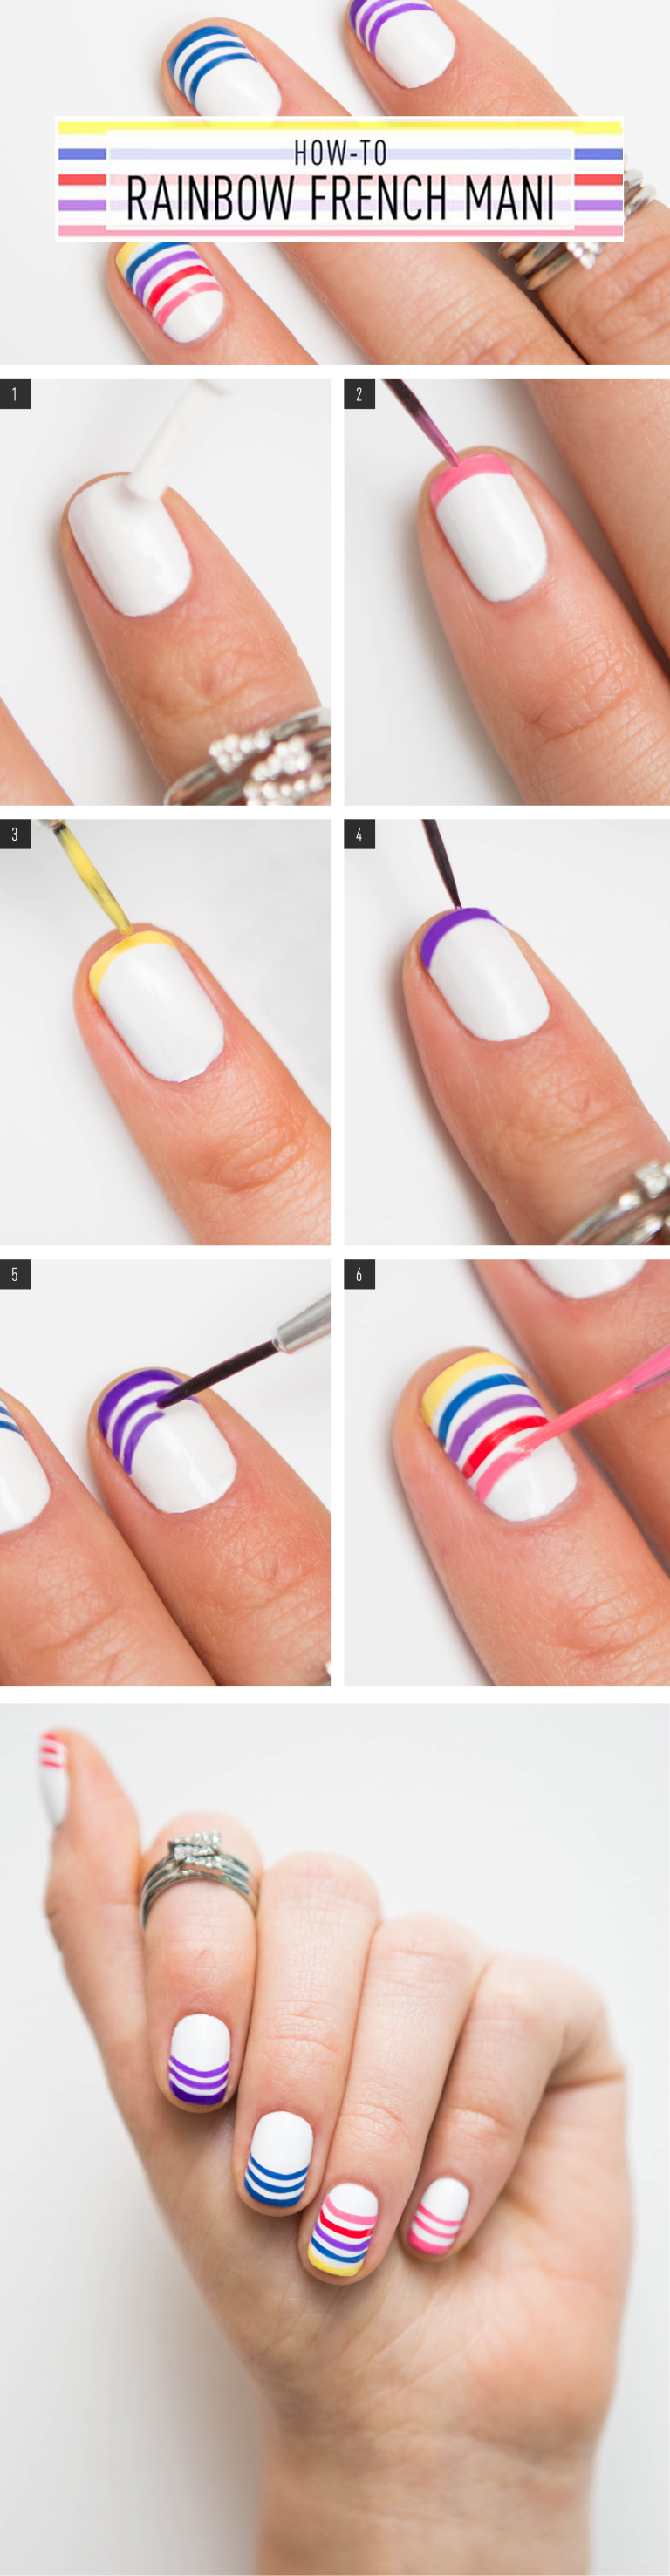 How to do a rainbow french manicure with yourself my love for how to do a rainbow french manicure with yourself solutioingenieria Images